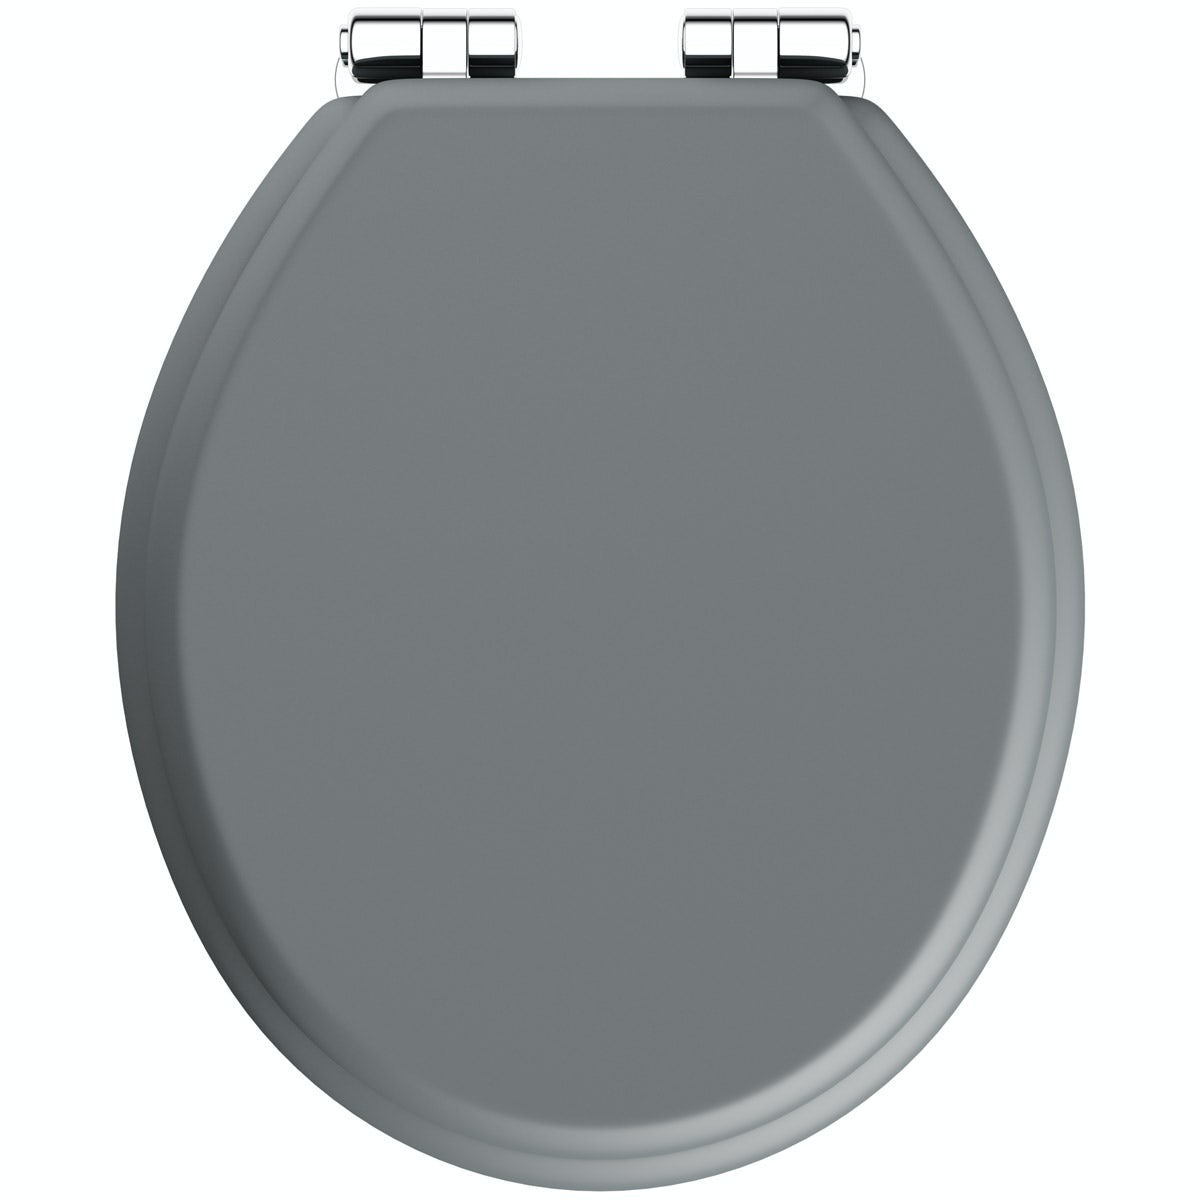 The Bath Co. traditional Dulwich stone grey engineered wood toilet seat with top fixing soft close hinge